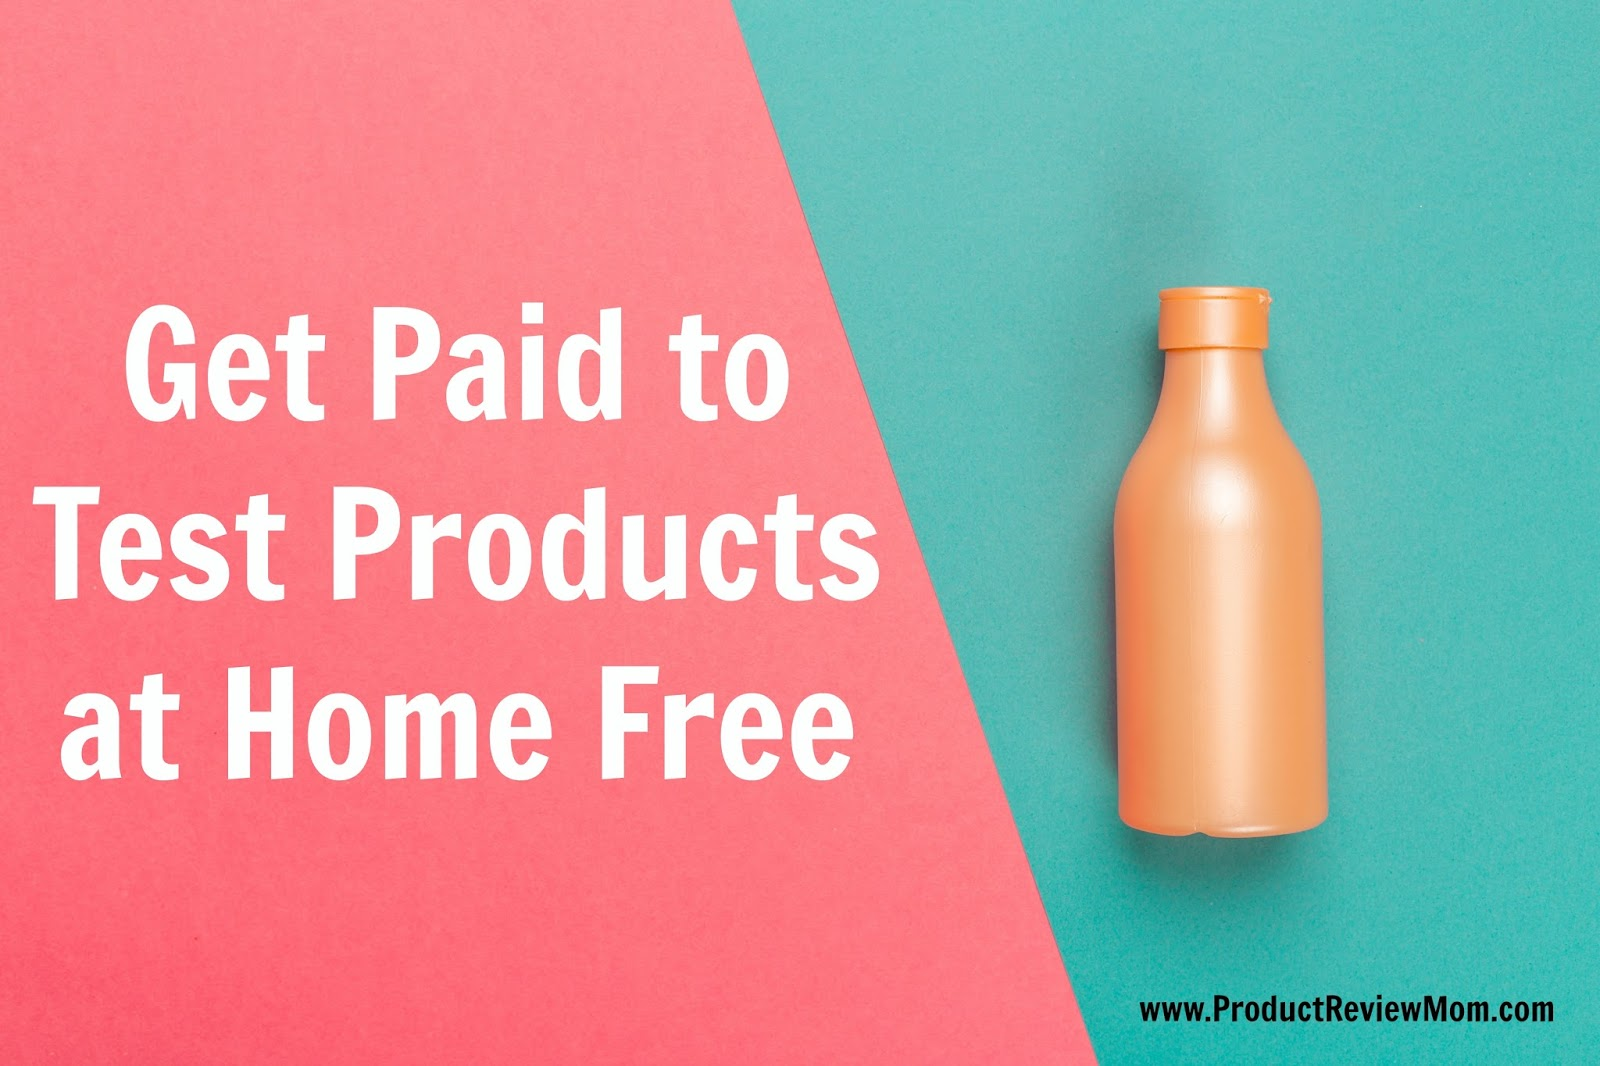 Get paid to try products at home